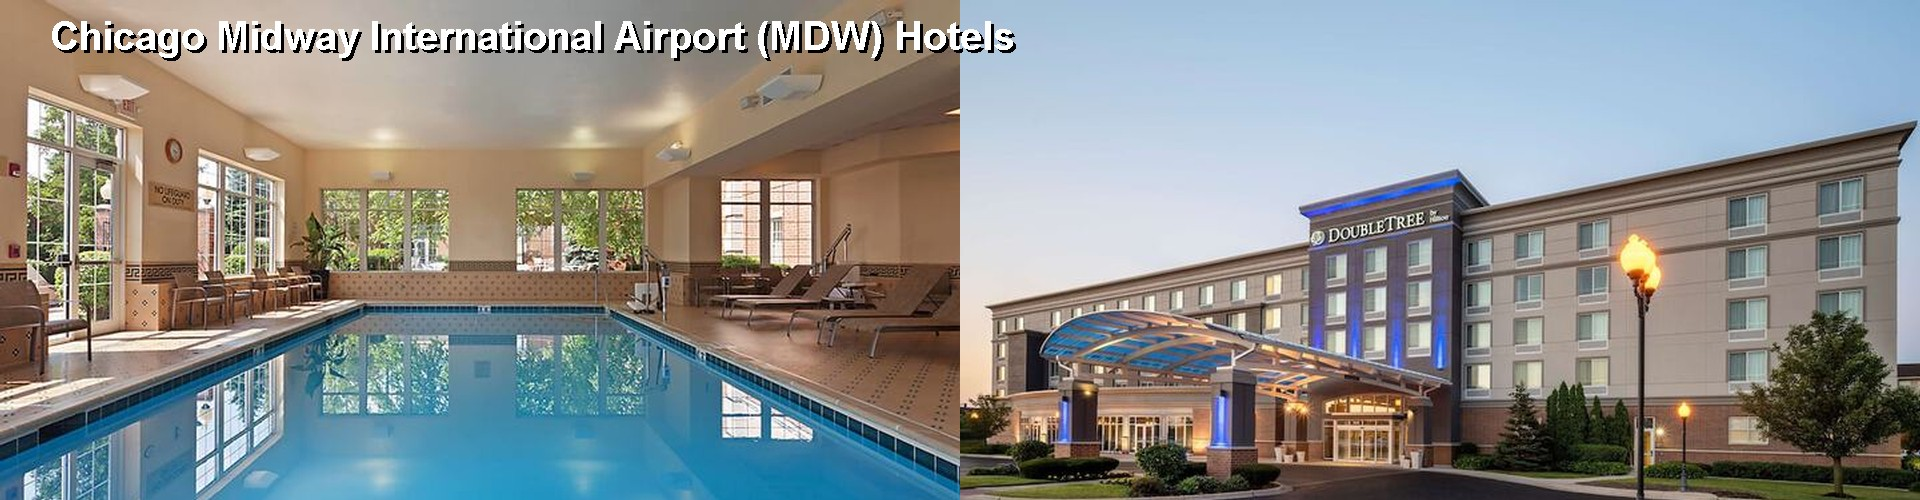 5 Best Hotels Near Chicago Midway International Airport Mdw